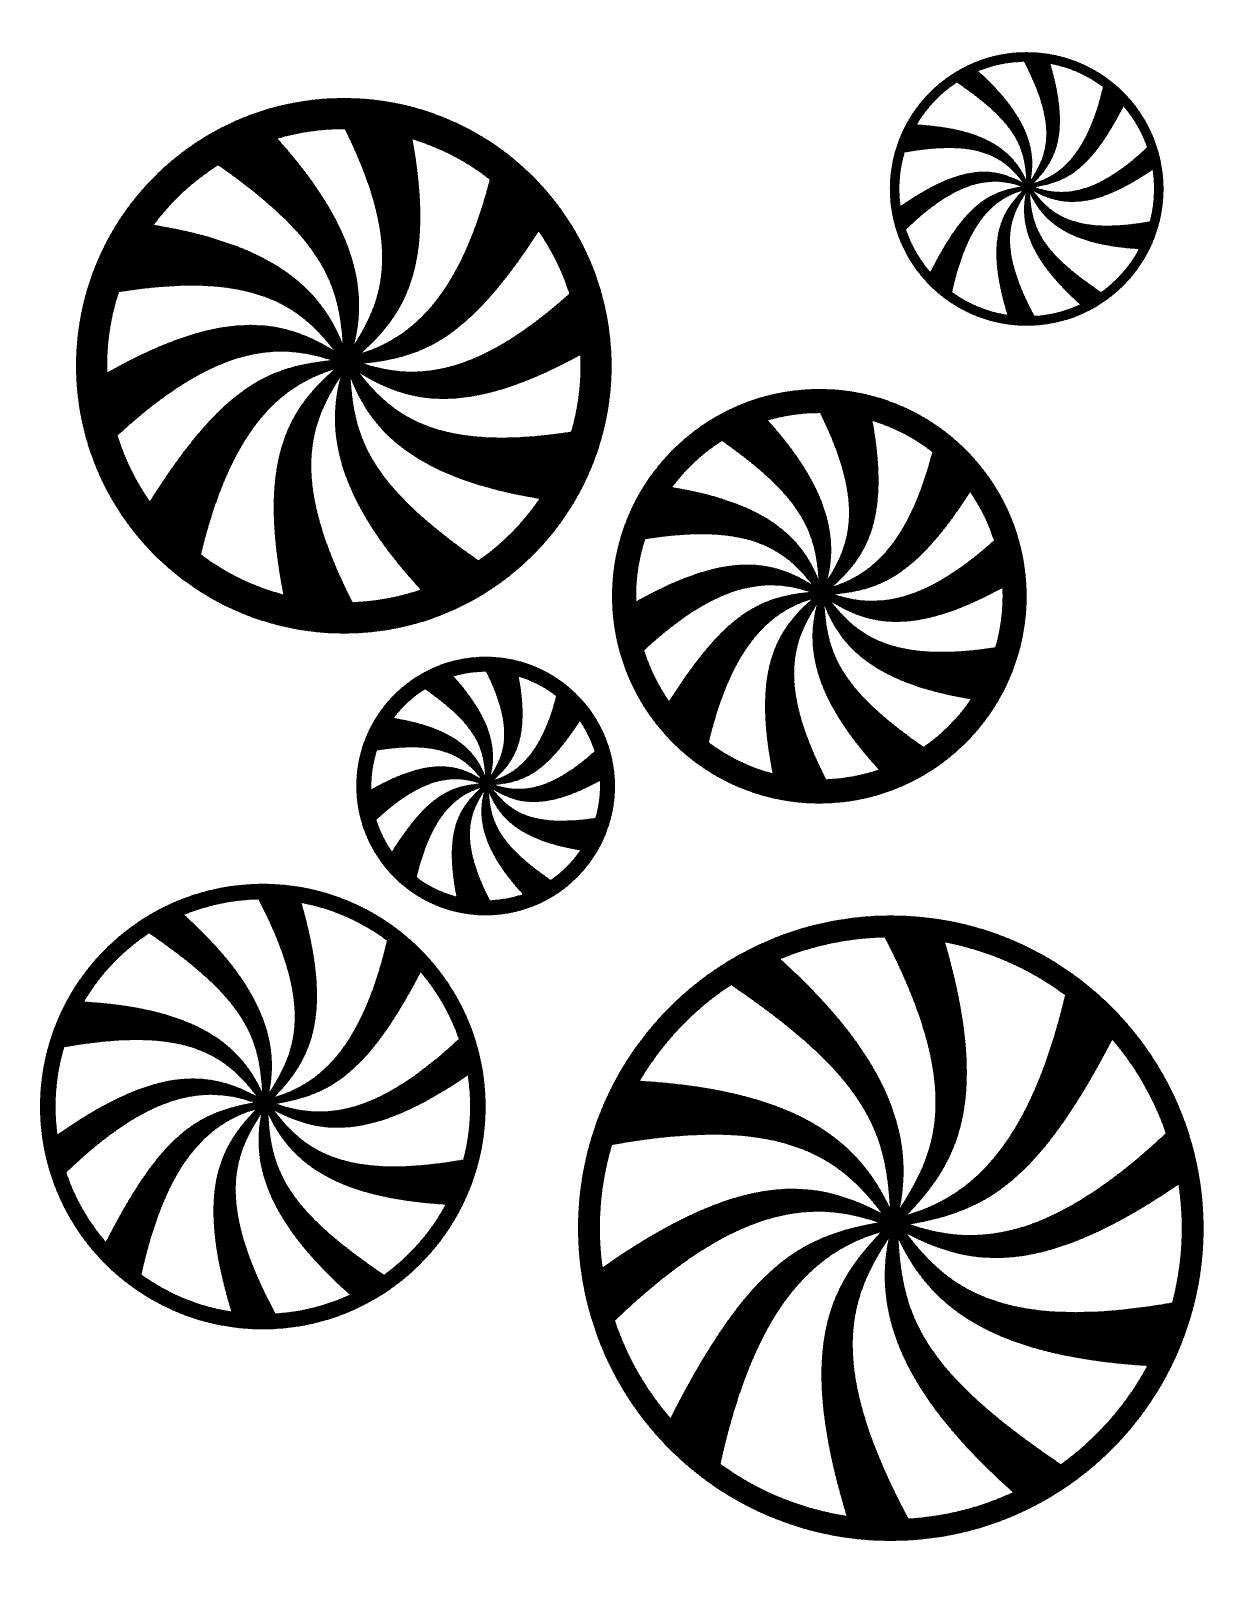 Round Candy Png 1240 1615 Candy Coloring Pages Free Coloring Pages Coloring Pages